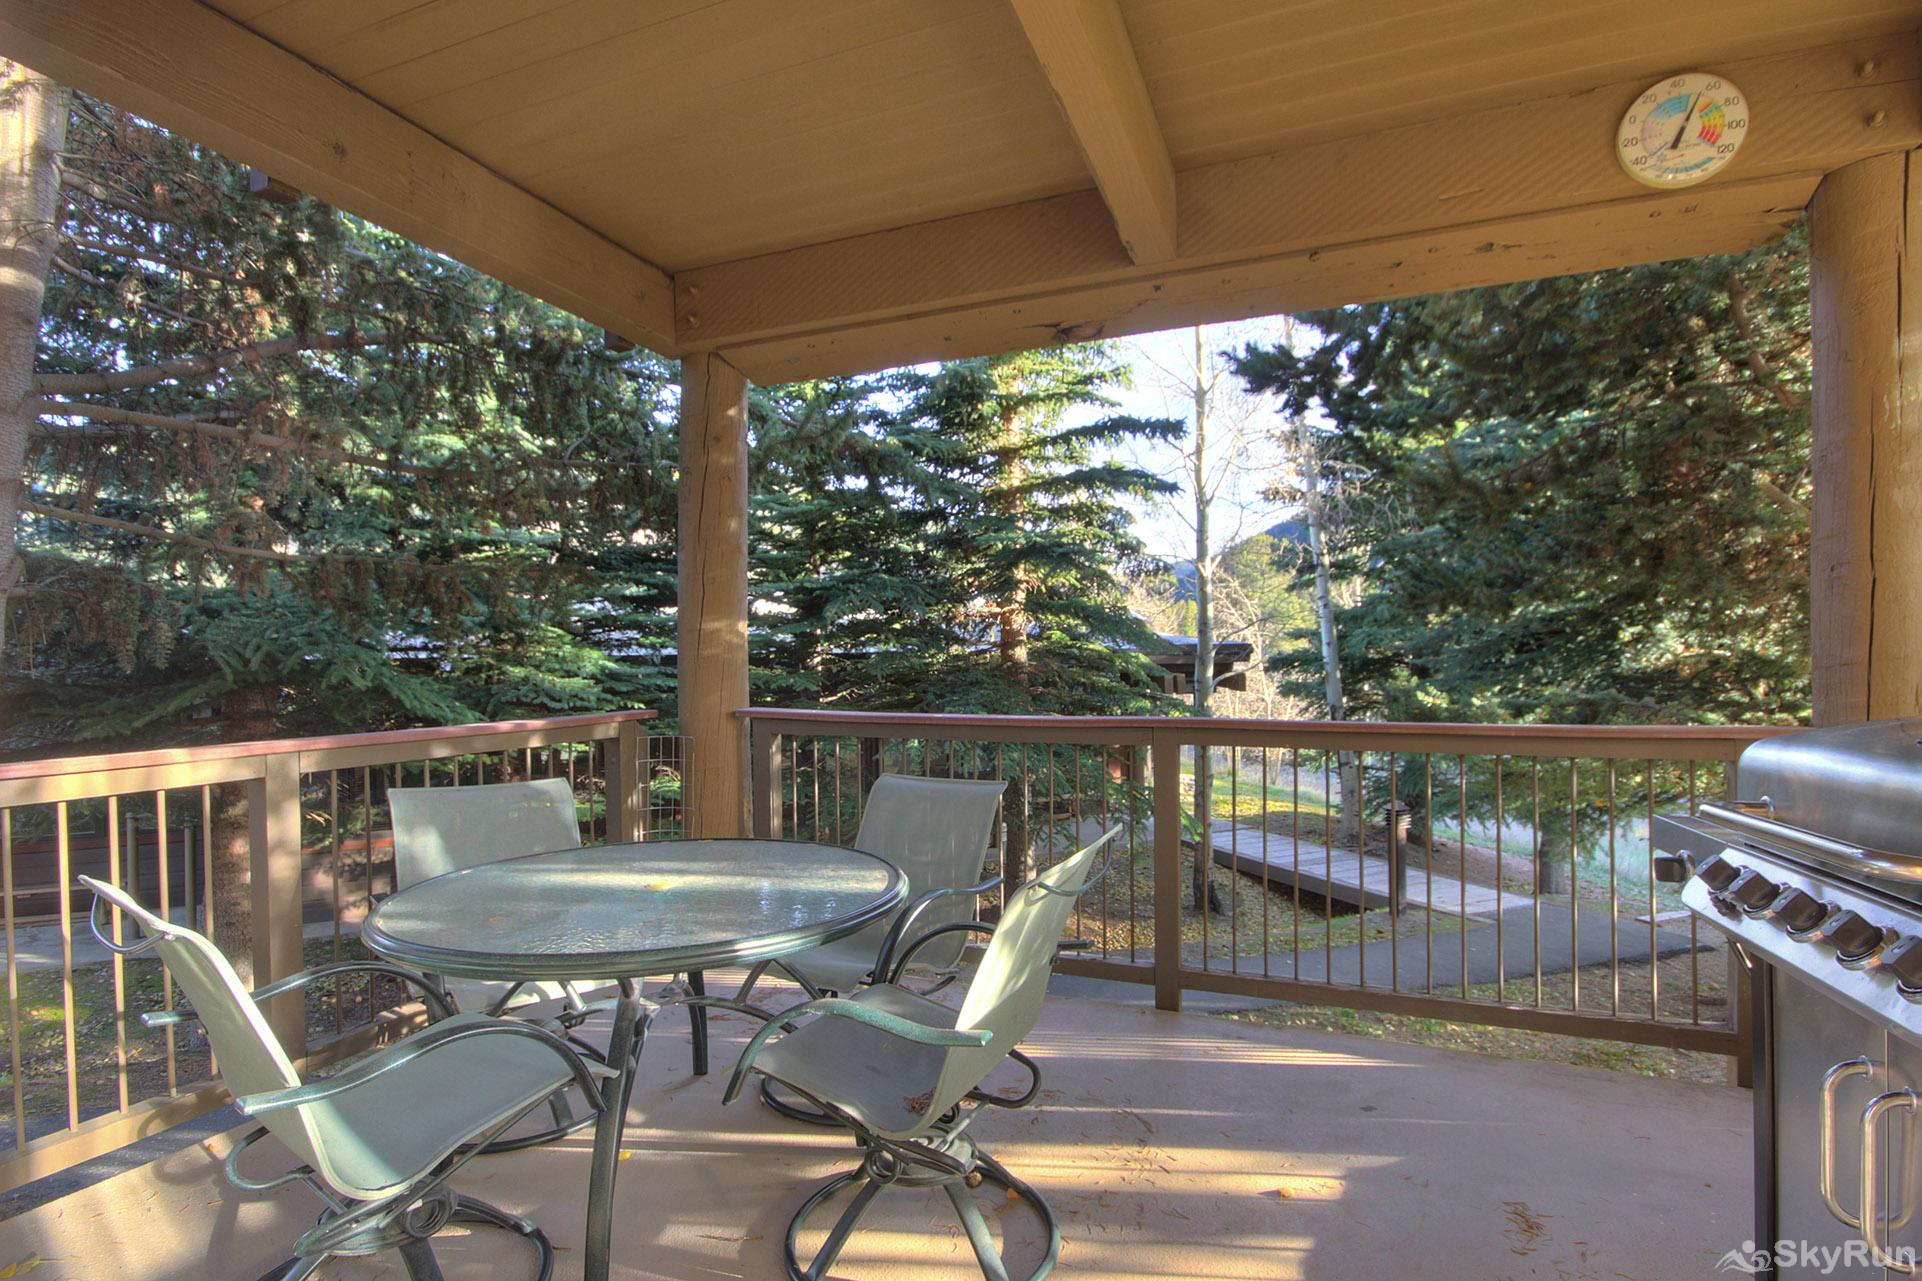 2019 Lodgepole Patio